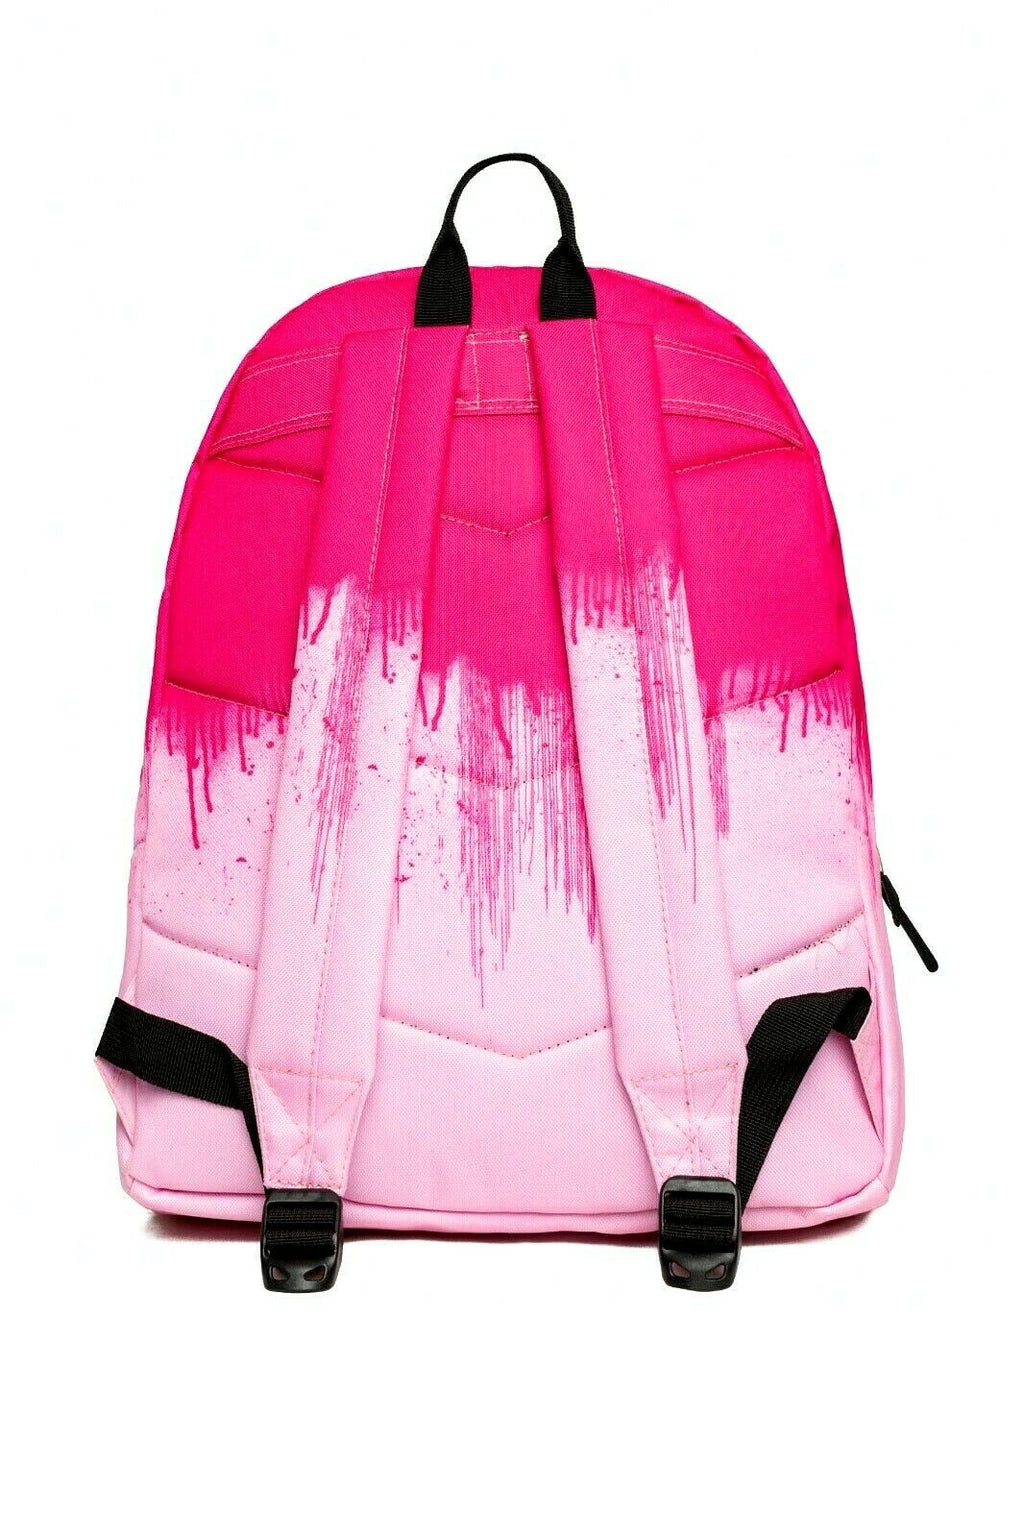 HYPE HALF DRIPS BACKPACK RUCKSACK BAG - FUSCHIA